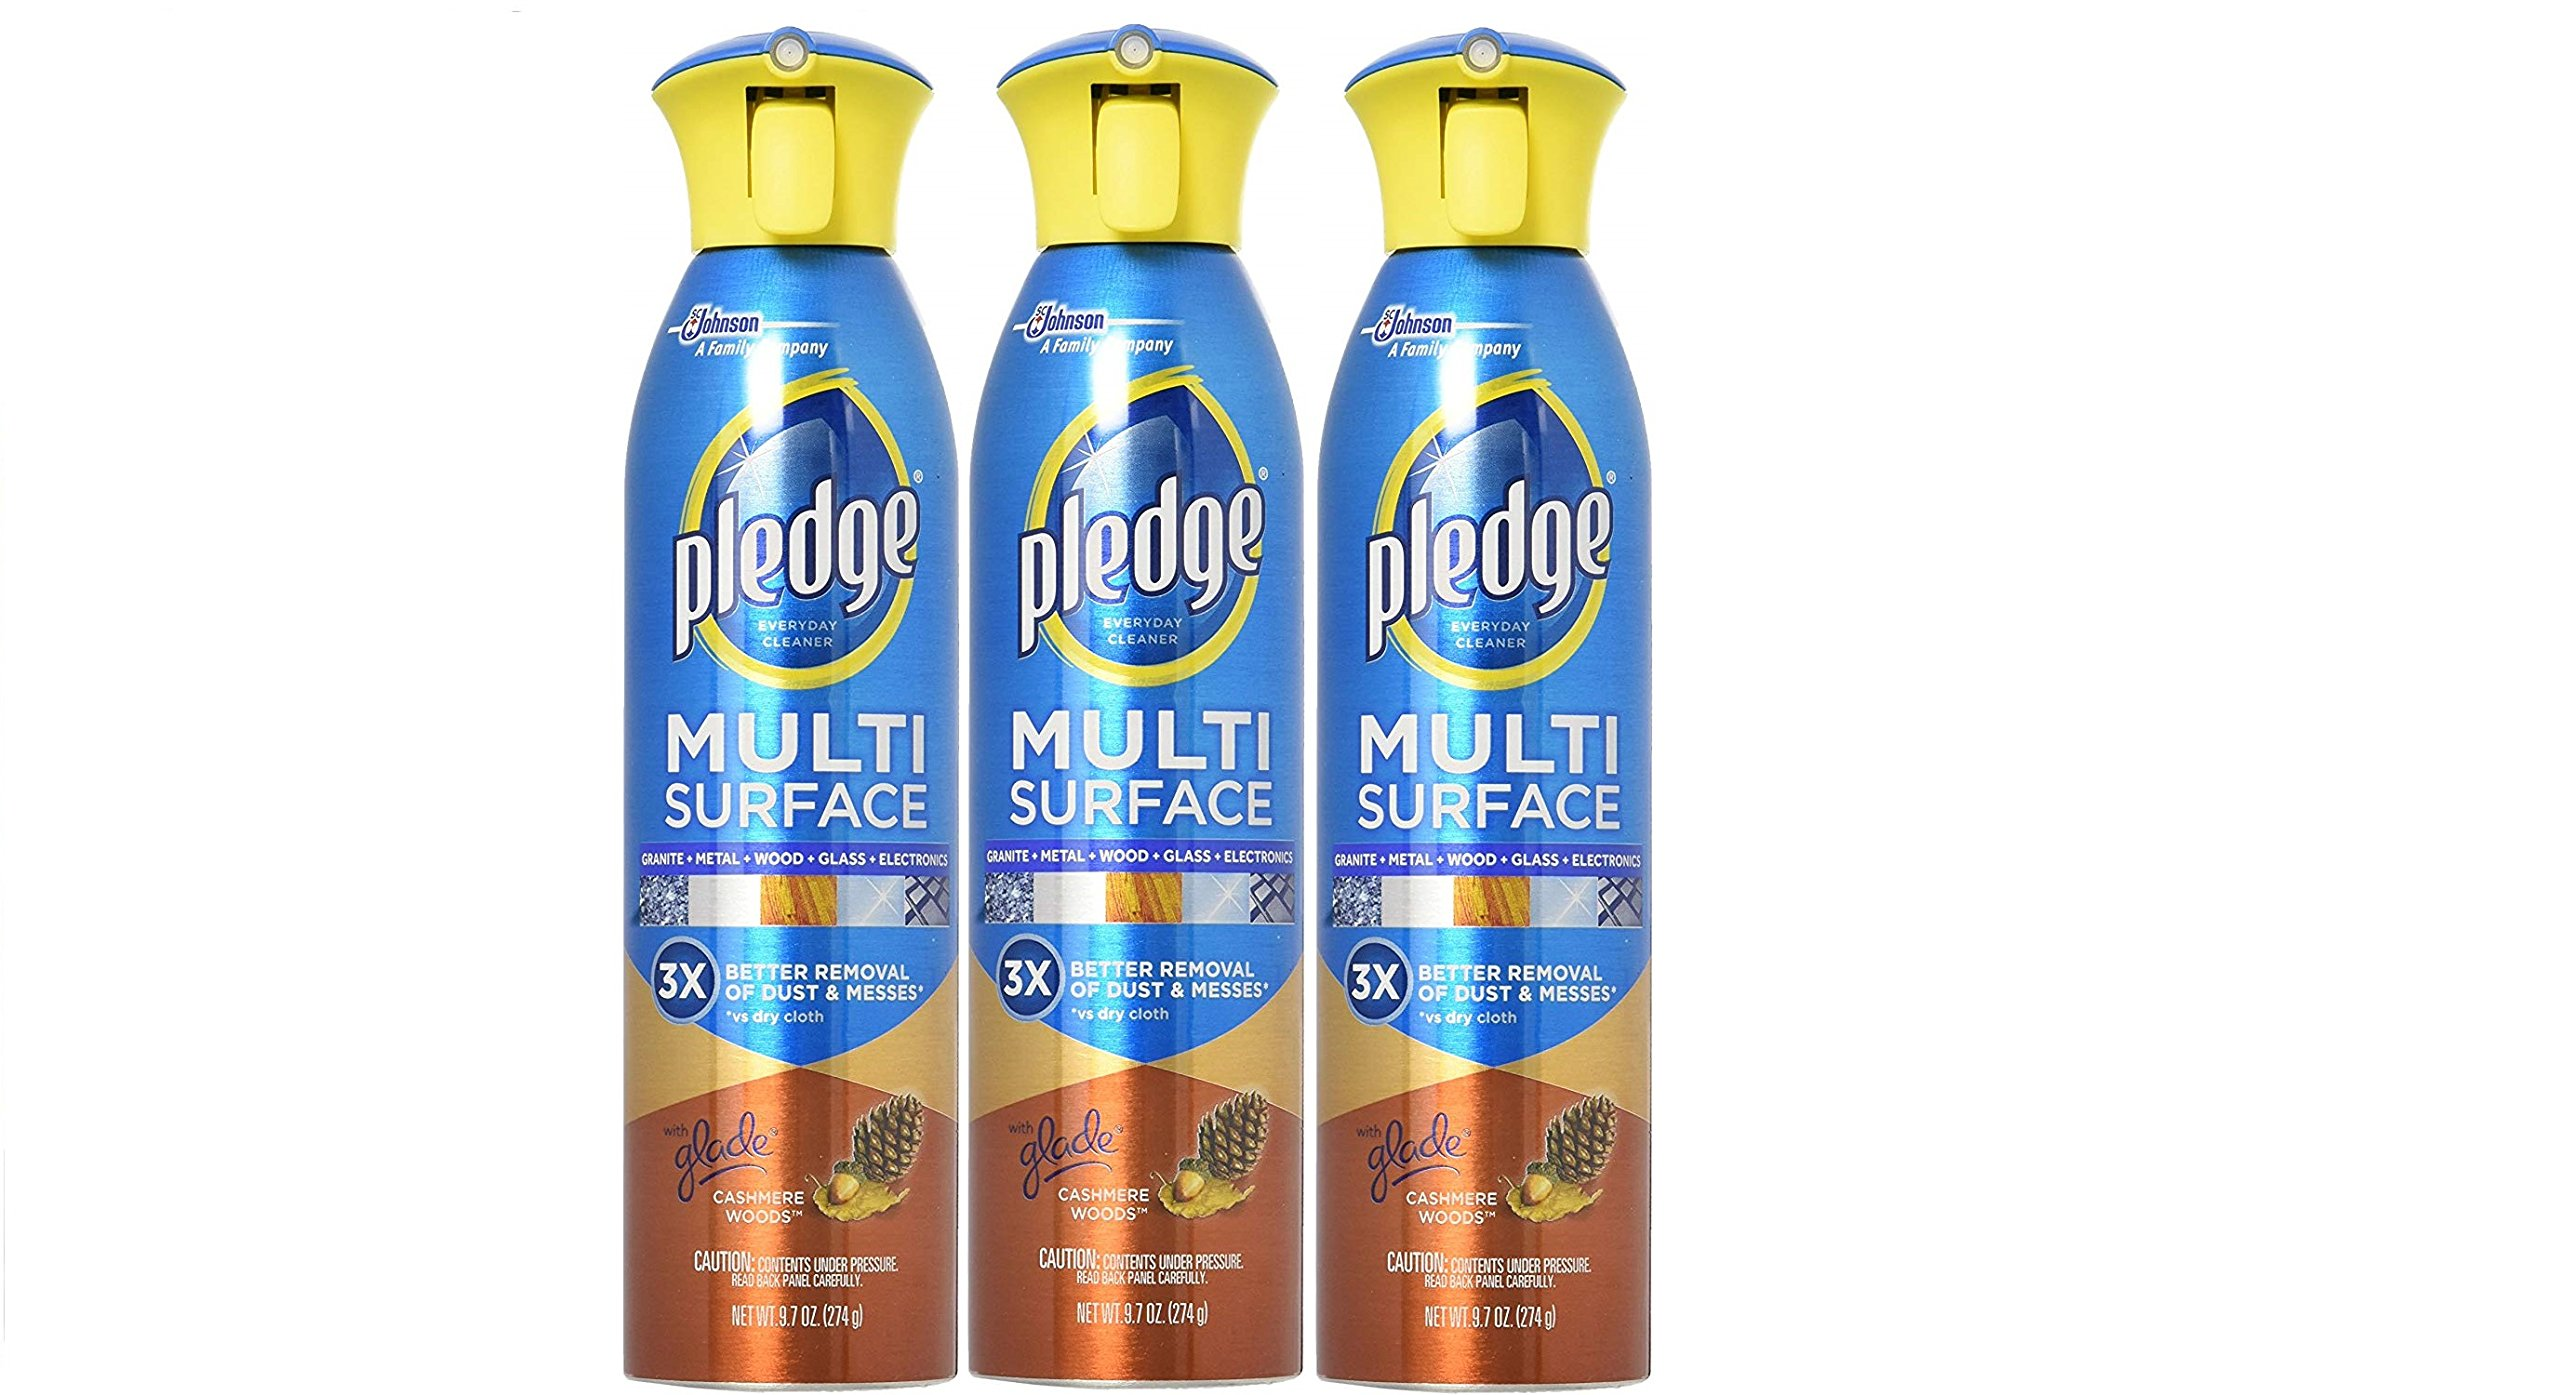 Pledge Multi Surface Everyday Cleaner with Glade Cashmere Woods 9.7 oz. (Pack - 3)